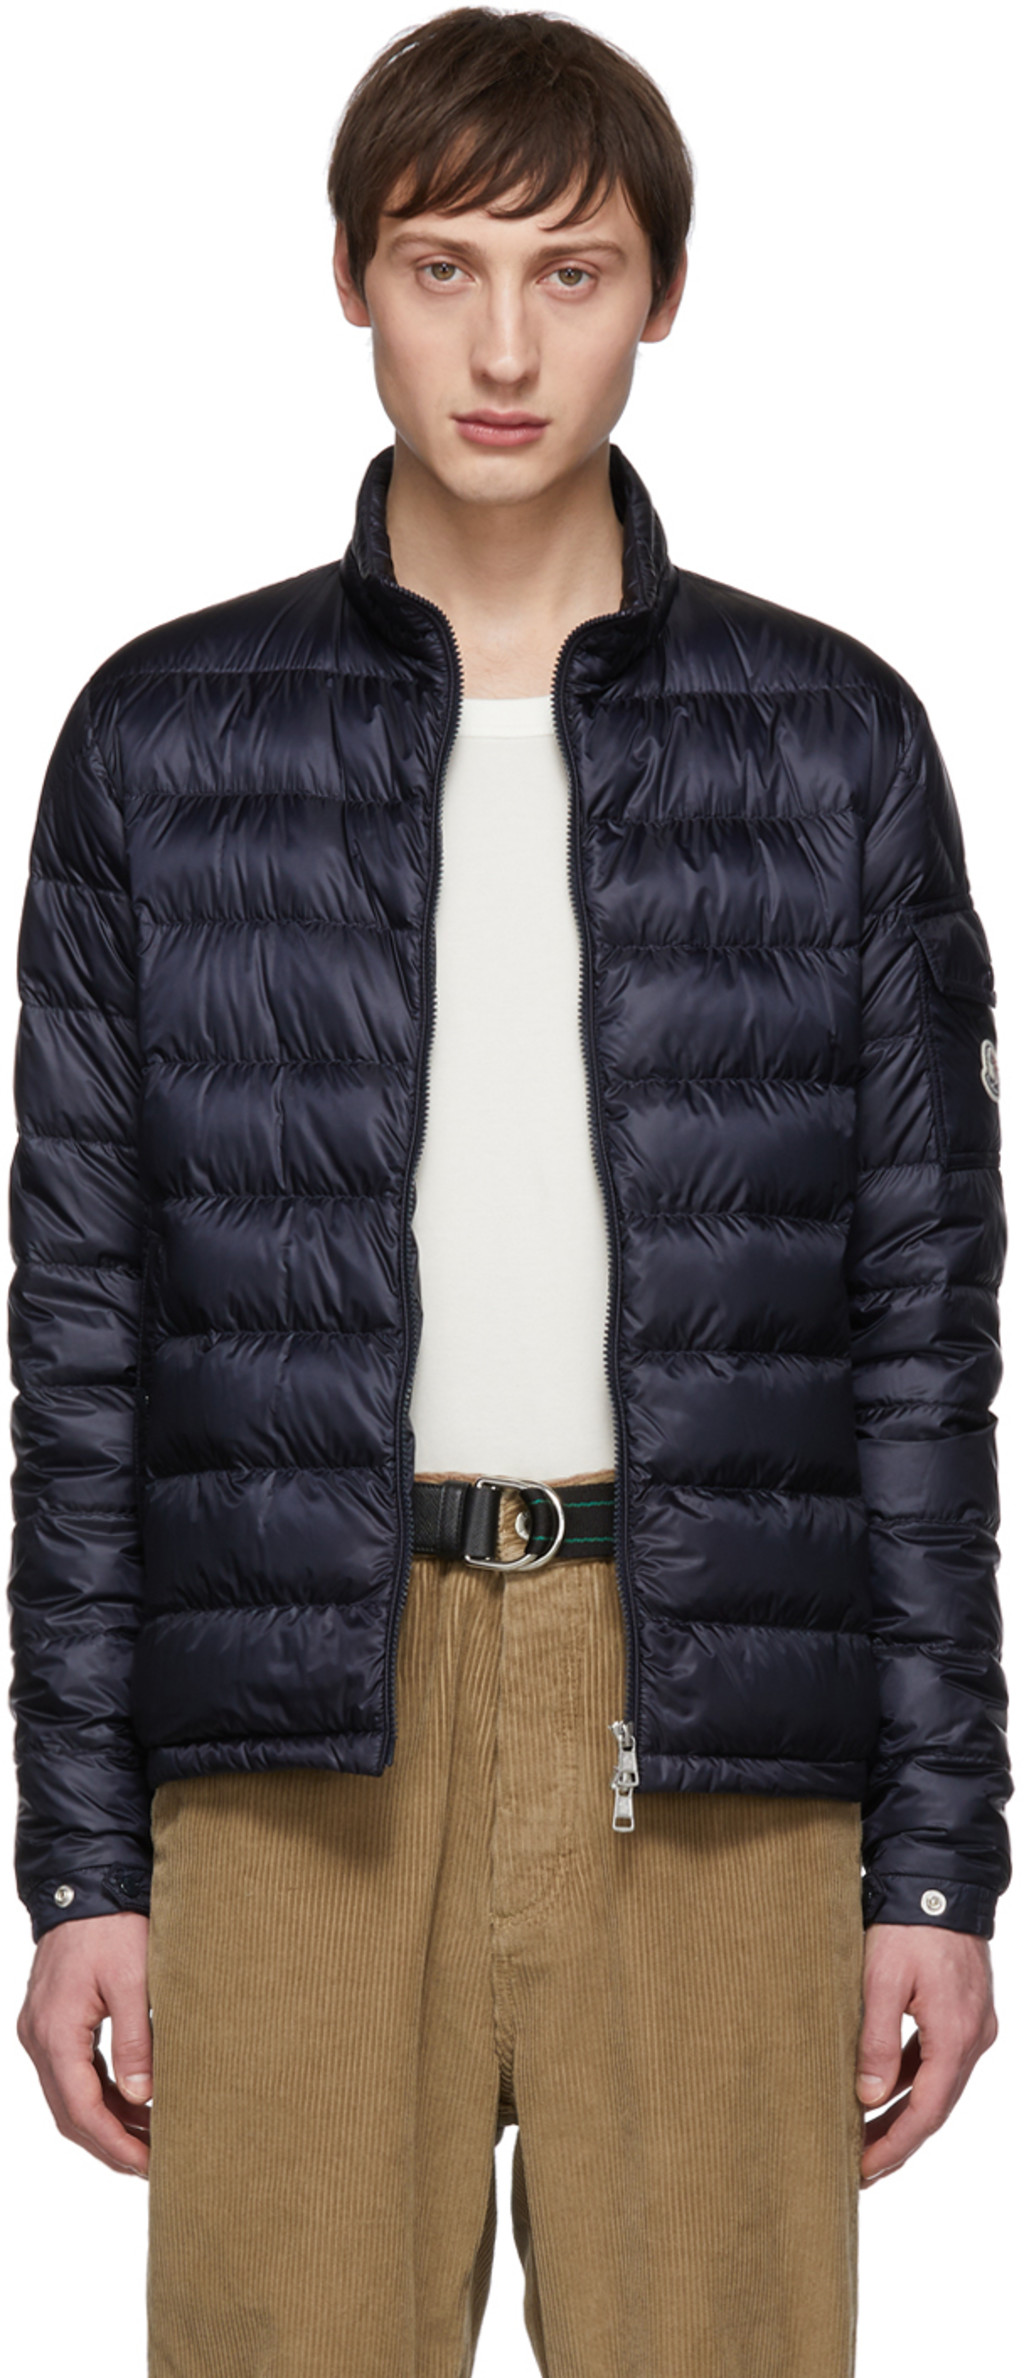 Moncler for Men SS19 Collection   SSENSE e176ce22a1c